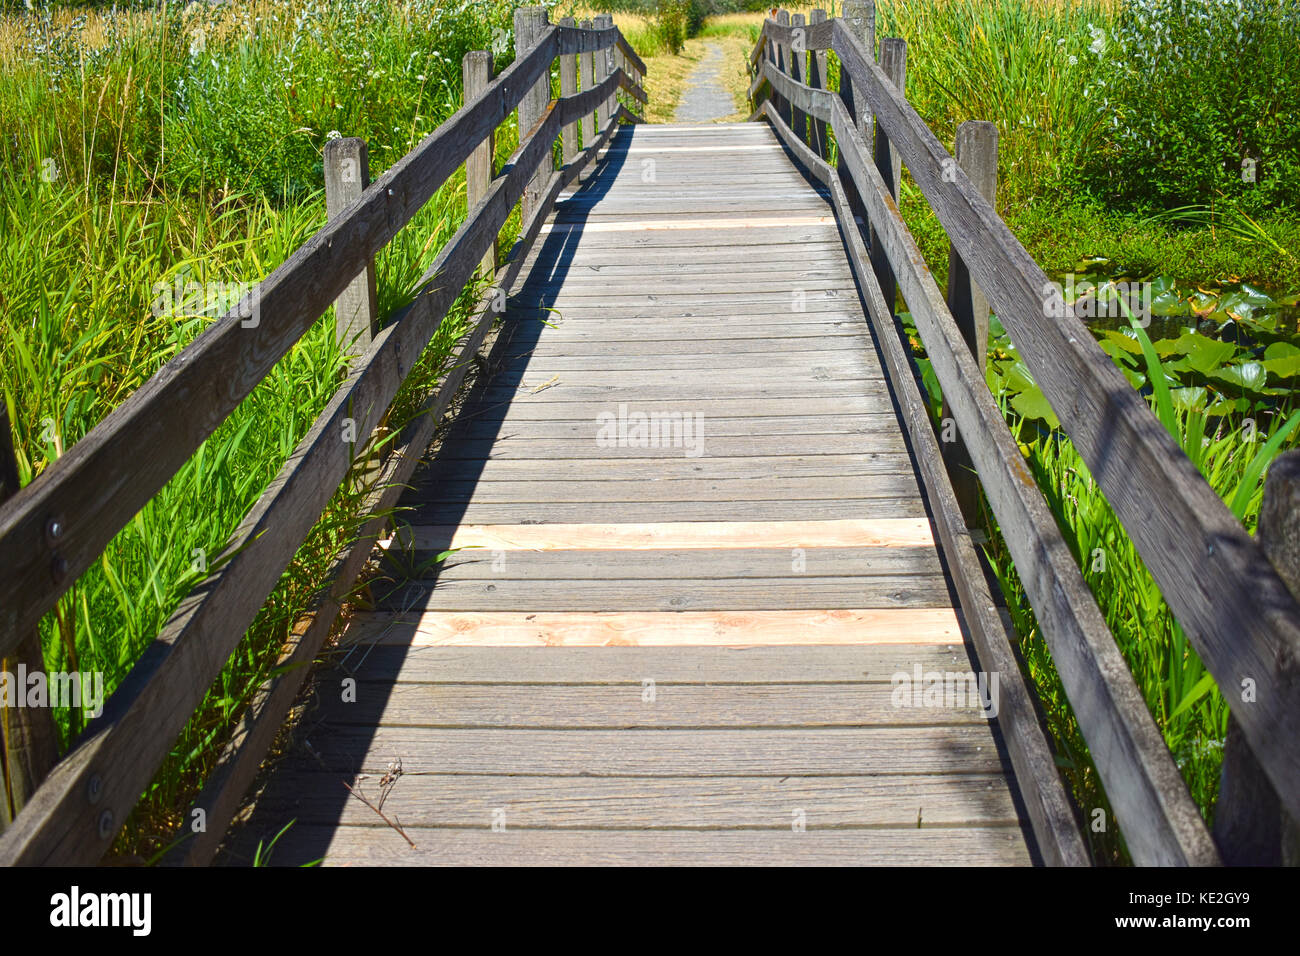 Wooden Bridge with new planks at Tennant Lake Park in Ferndale, Washington - Stock Image